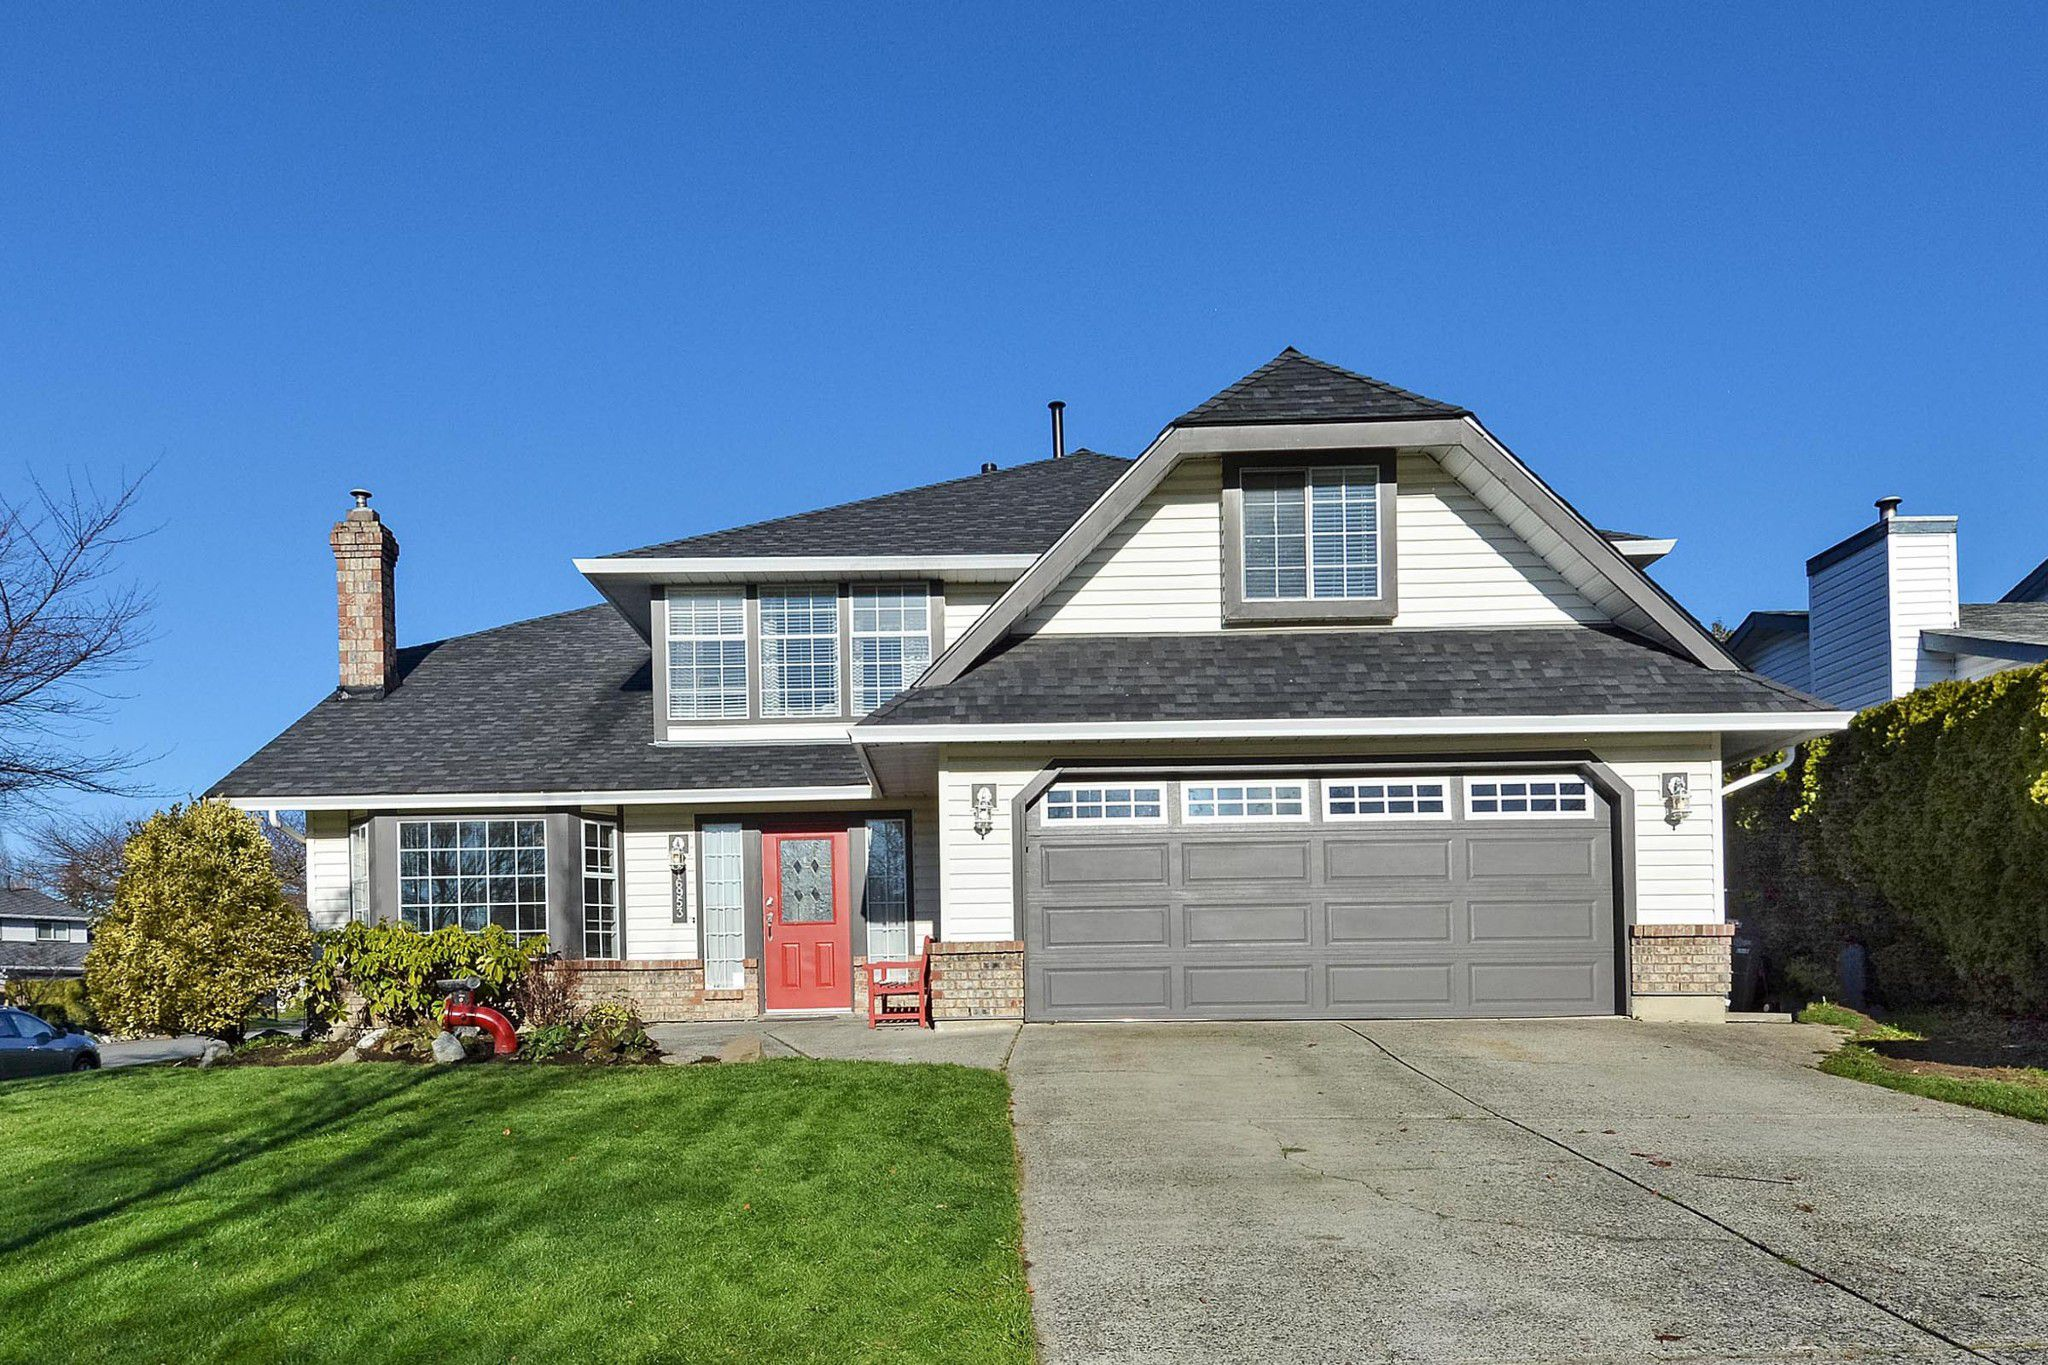 """Main Photo: 16953 58A Avenue in Surrey: Cloverdale BC House for sale in """"JERSEY HILLS ESTATES"""" (Cloverdale)  : MLS®# R2326245"""